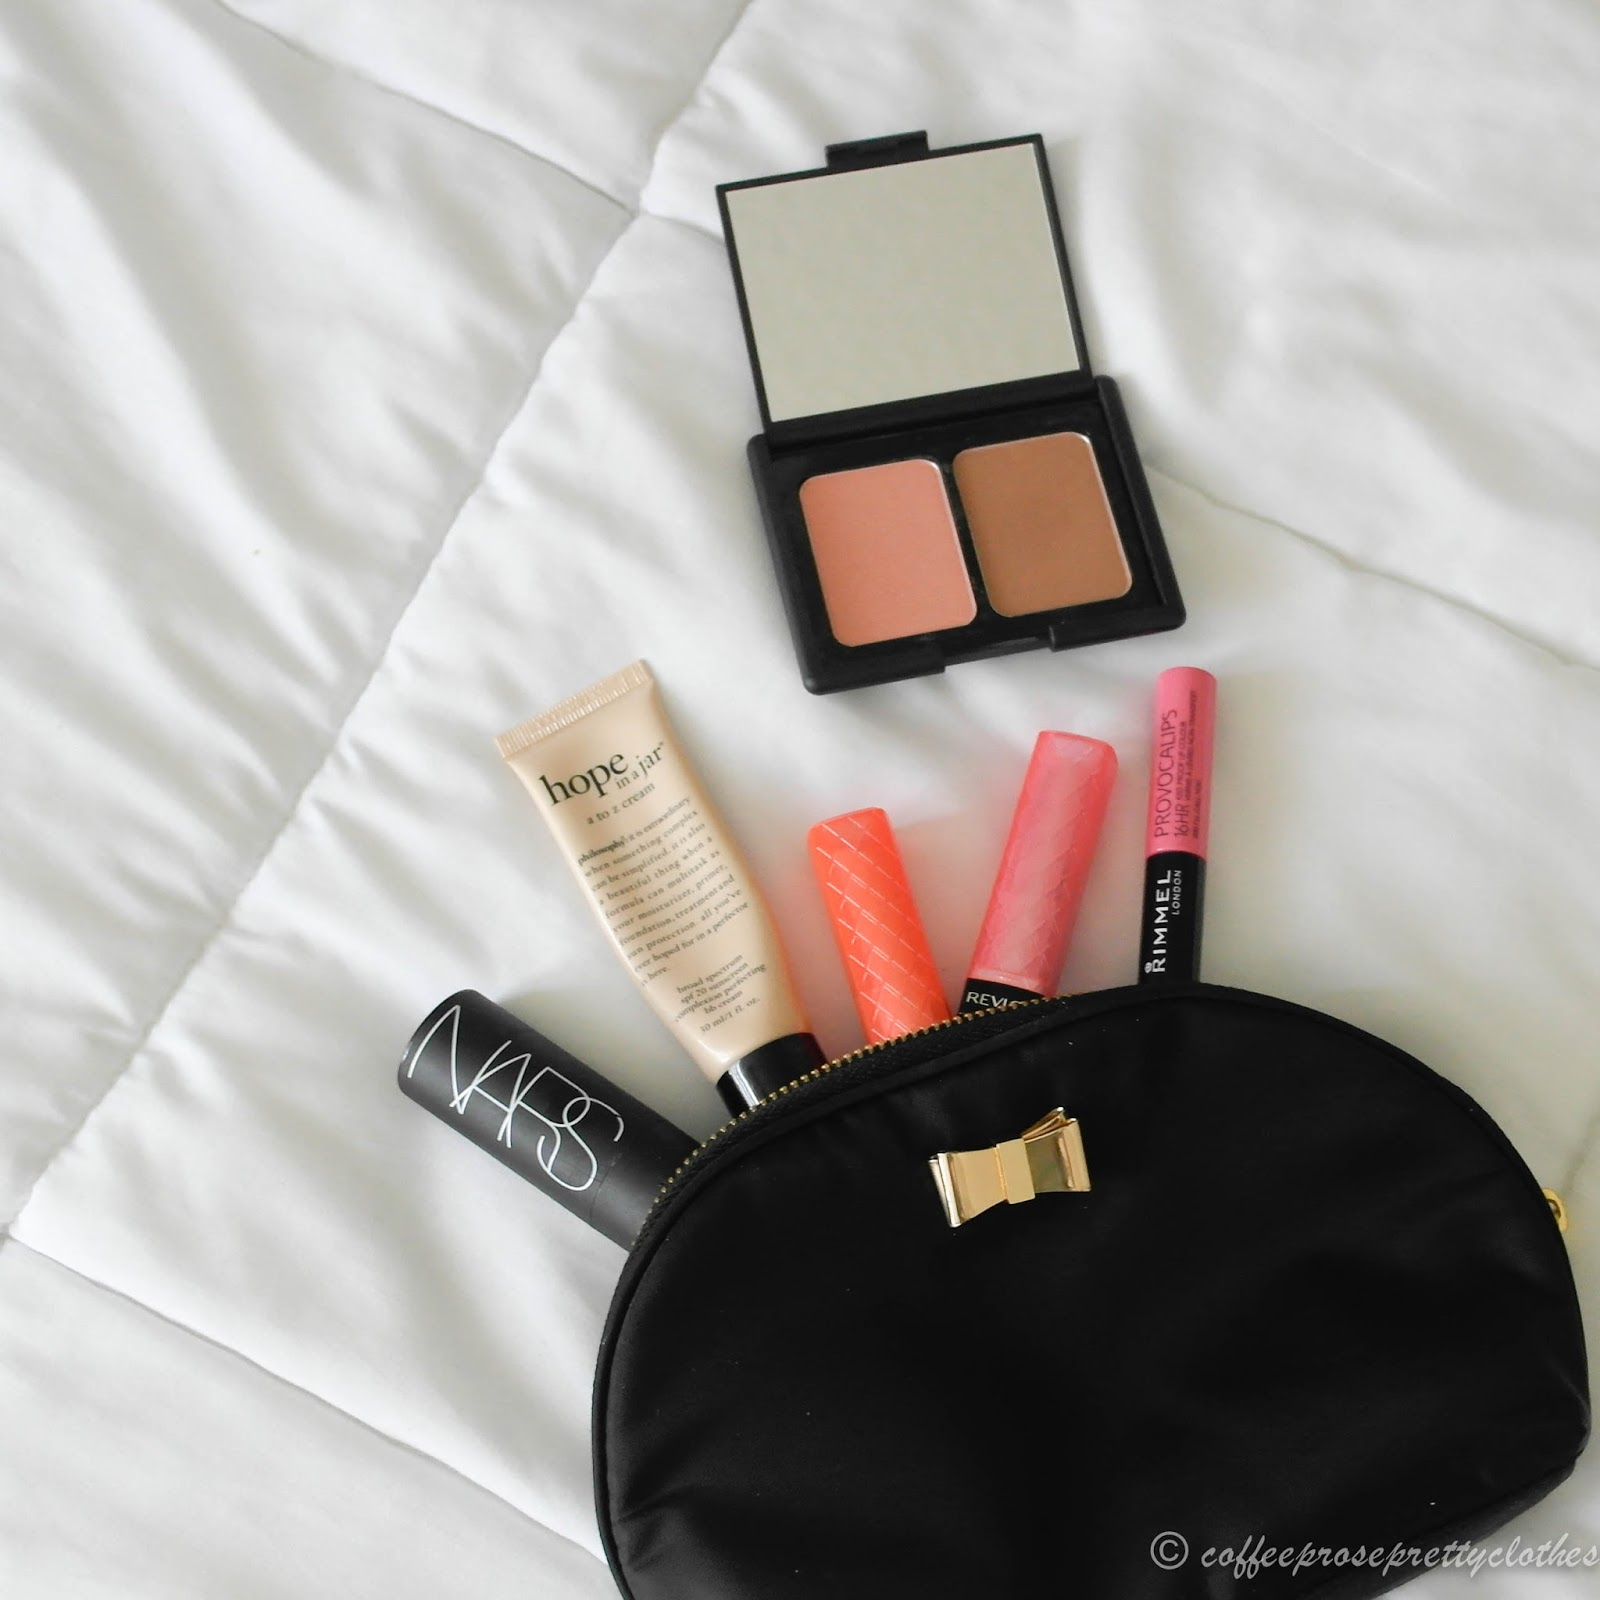 Philosophy A-Z Cream, Revlon Lip Butter, ELF contour palette